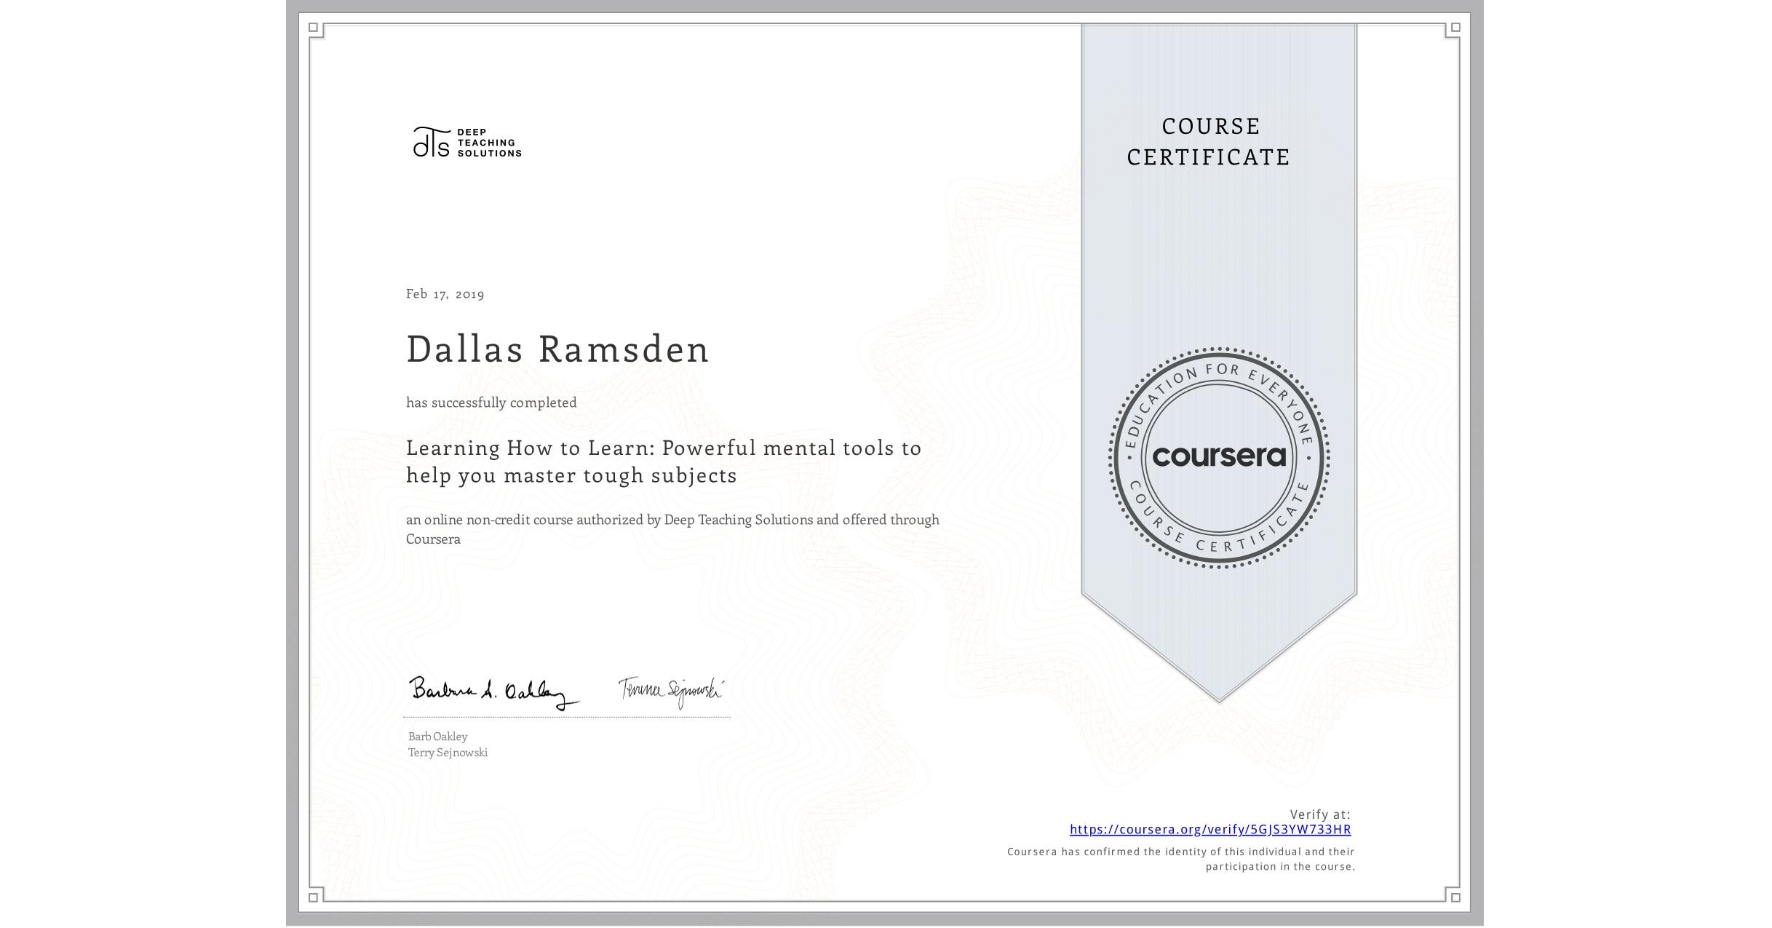 View certificate for Dallas Ramsden, Learning How to Learn: Powerful mental tools to help you master tough subjects, an online non-credit course authorized by McMaster University & University of California San Diego and offered through Coursera